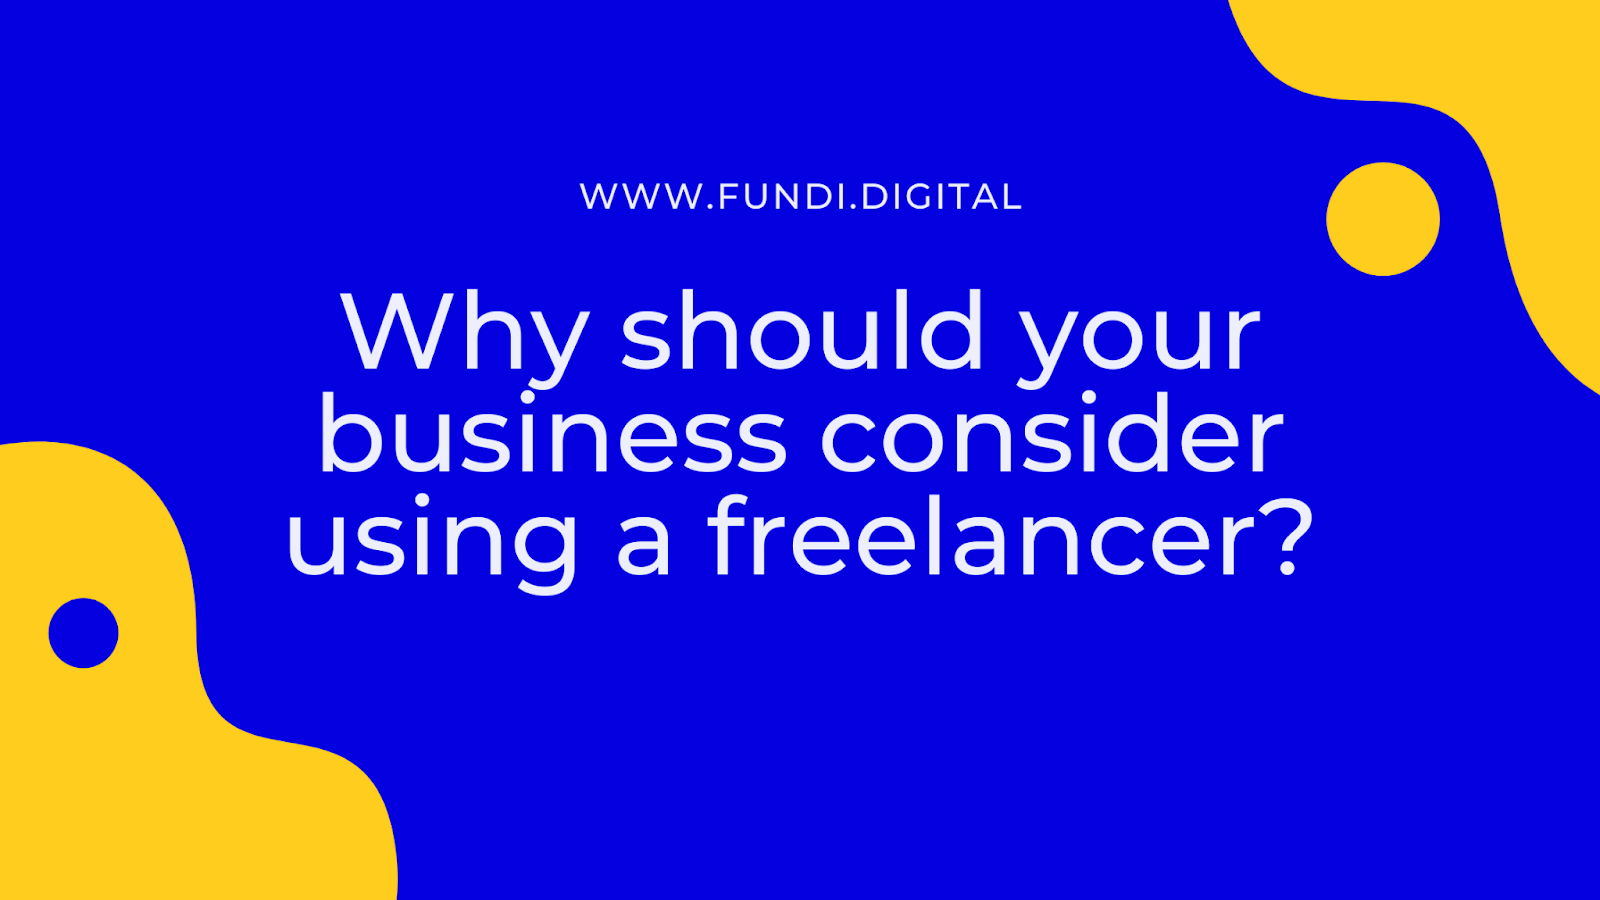 Why should your business consider using a freelancer?